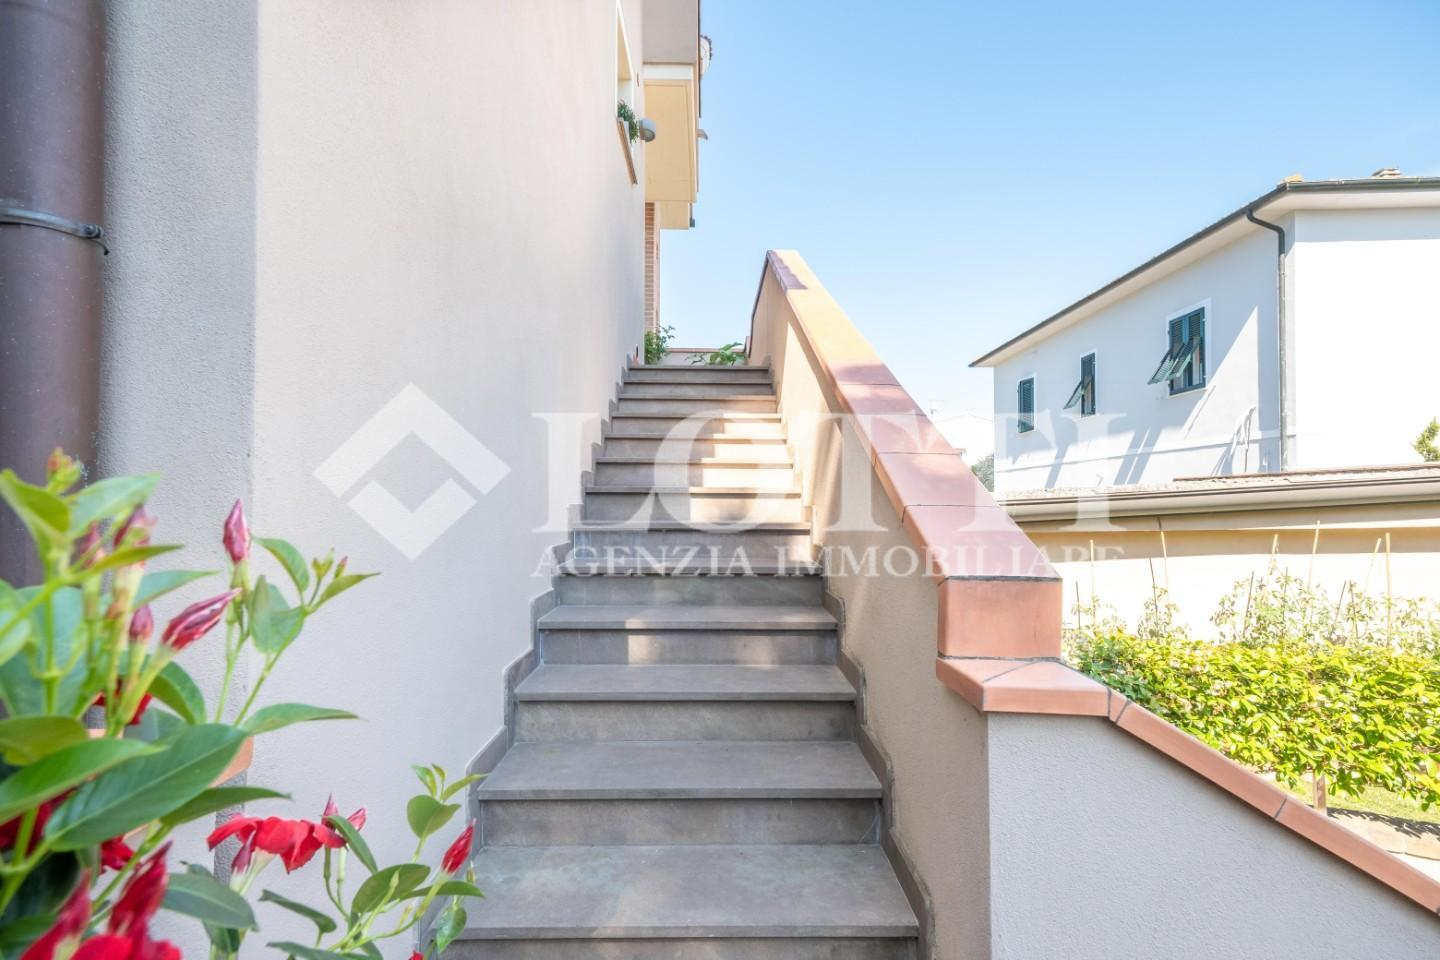 Apartment for sale, ref. 705